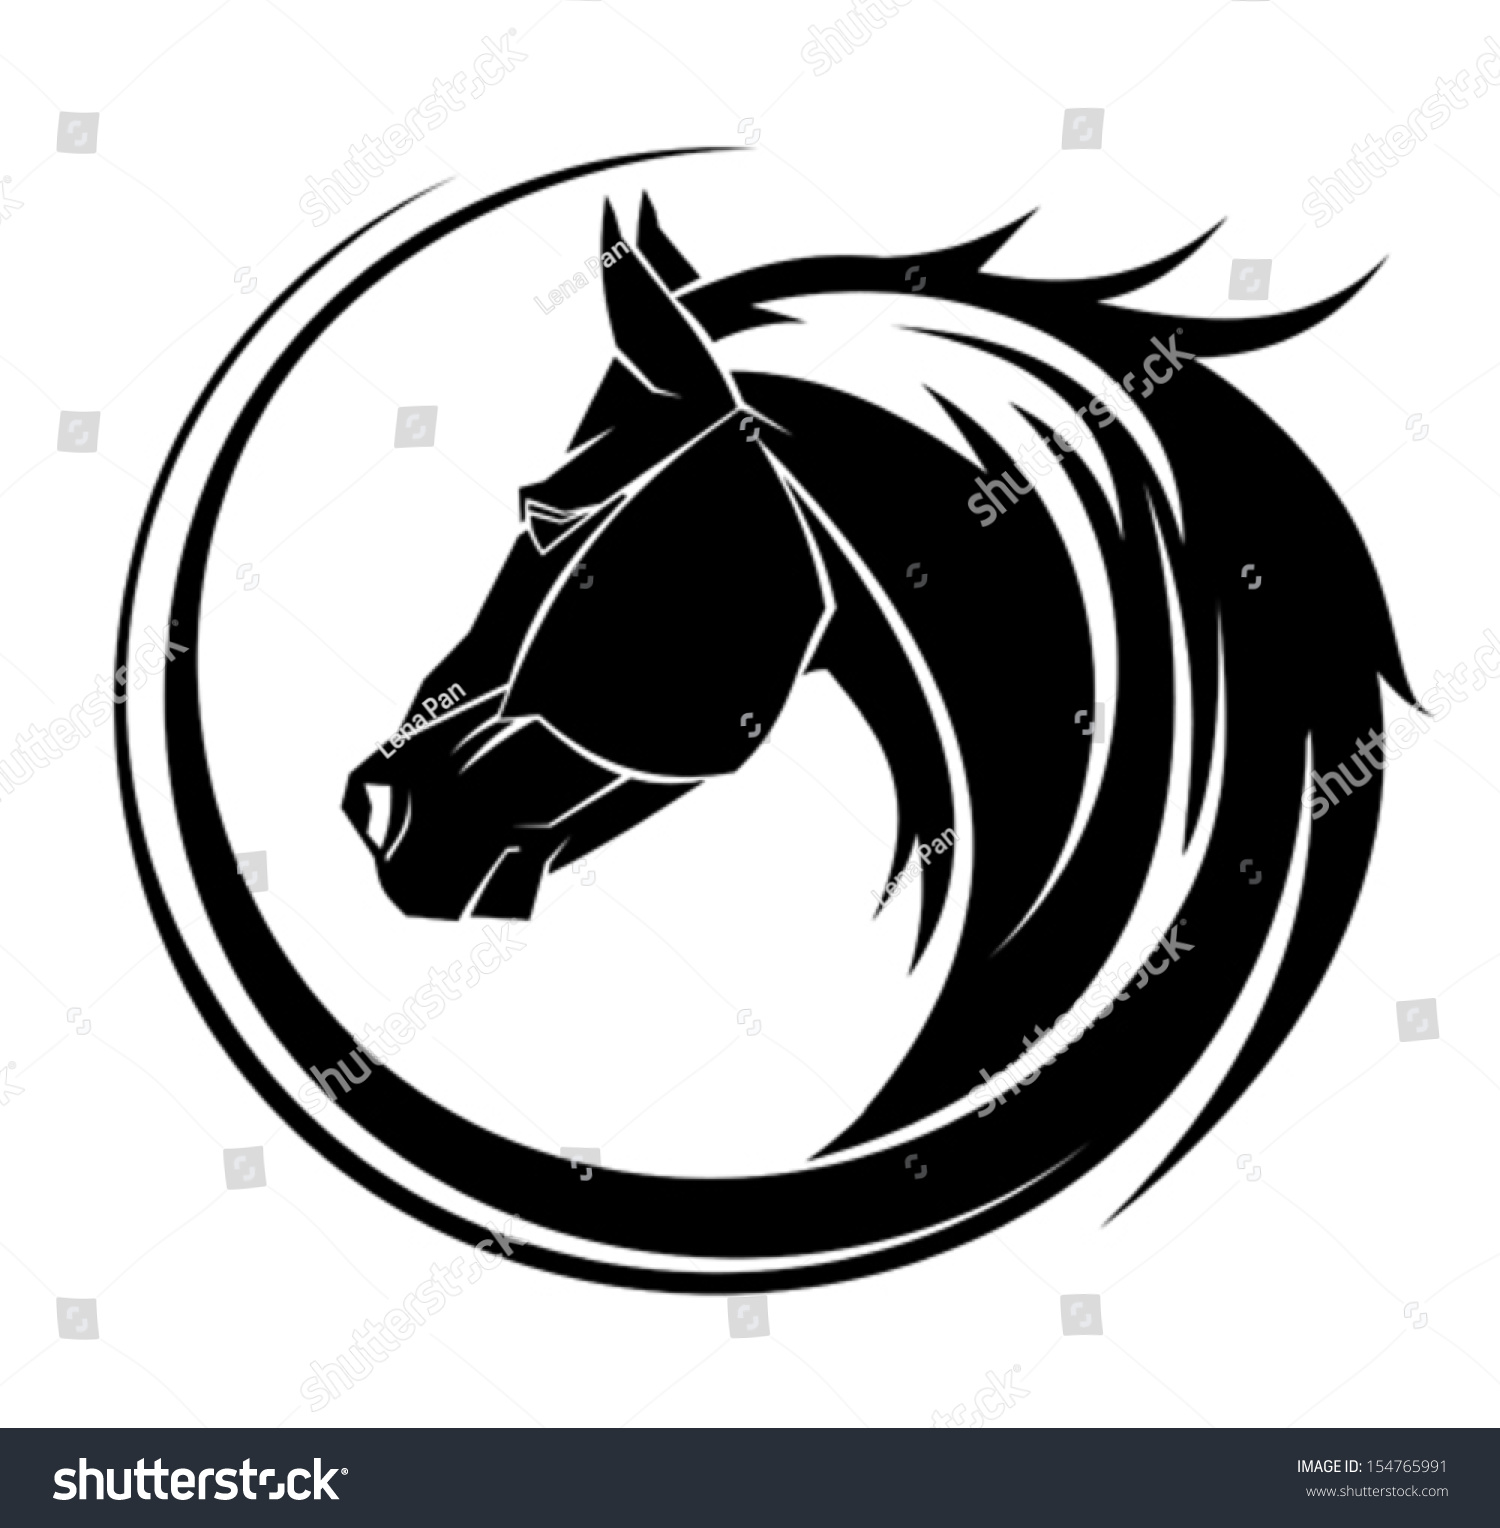 horse circle tribal tattoo art stock vector 154765991 shutterstock. Black Bedroom Furniture Sets. Home Design Ideas